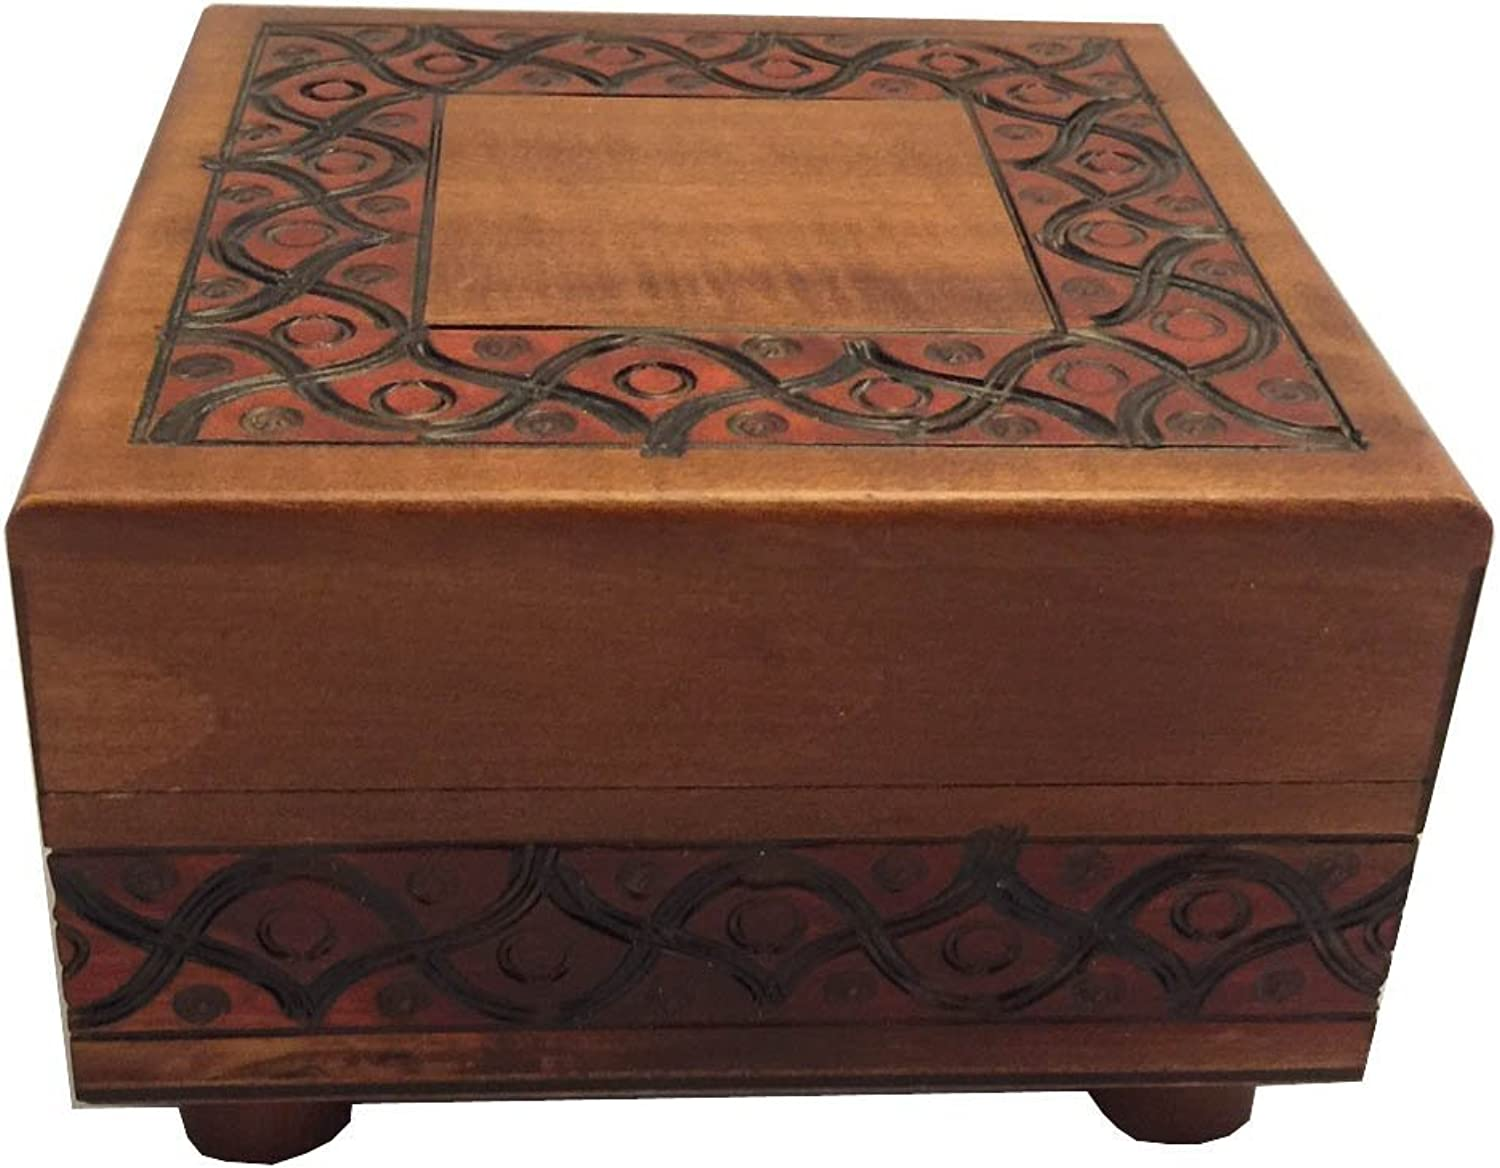 Enchanted World of Boxes Platz Traditioneller Entwurf Natural Finish Geheimnis Legs Puzzle Box